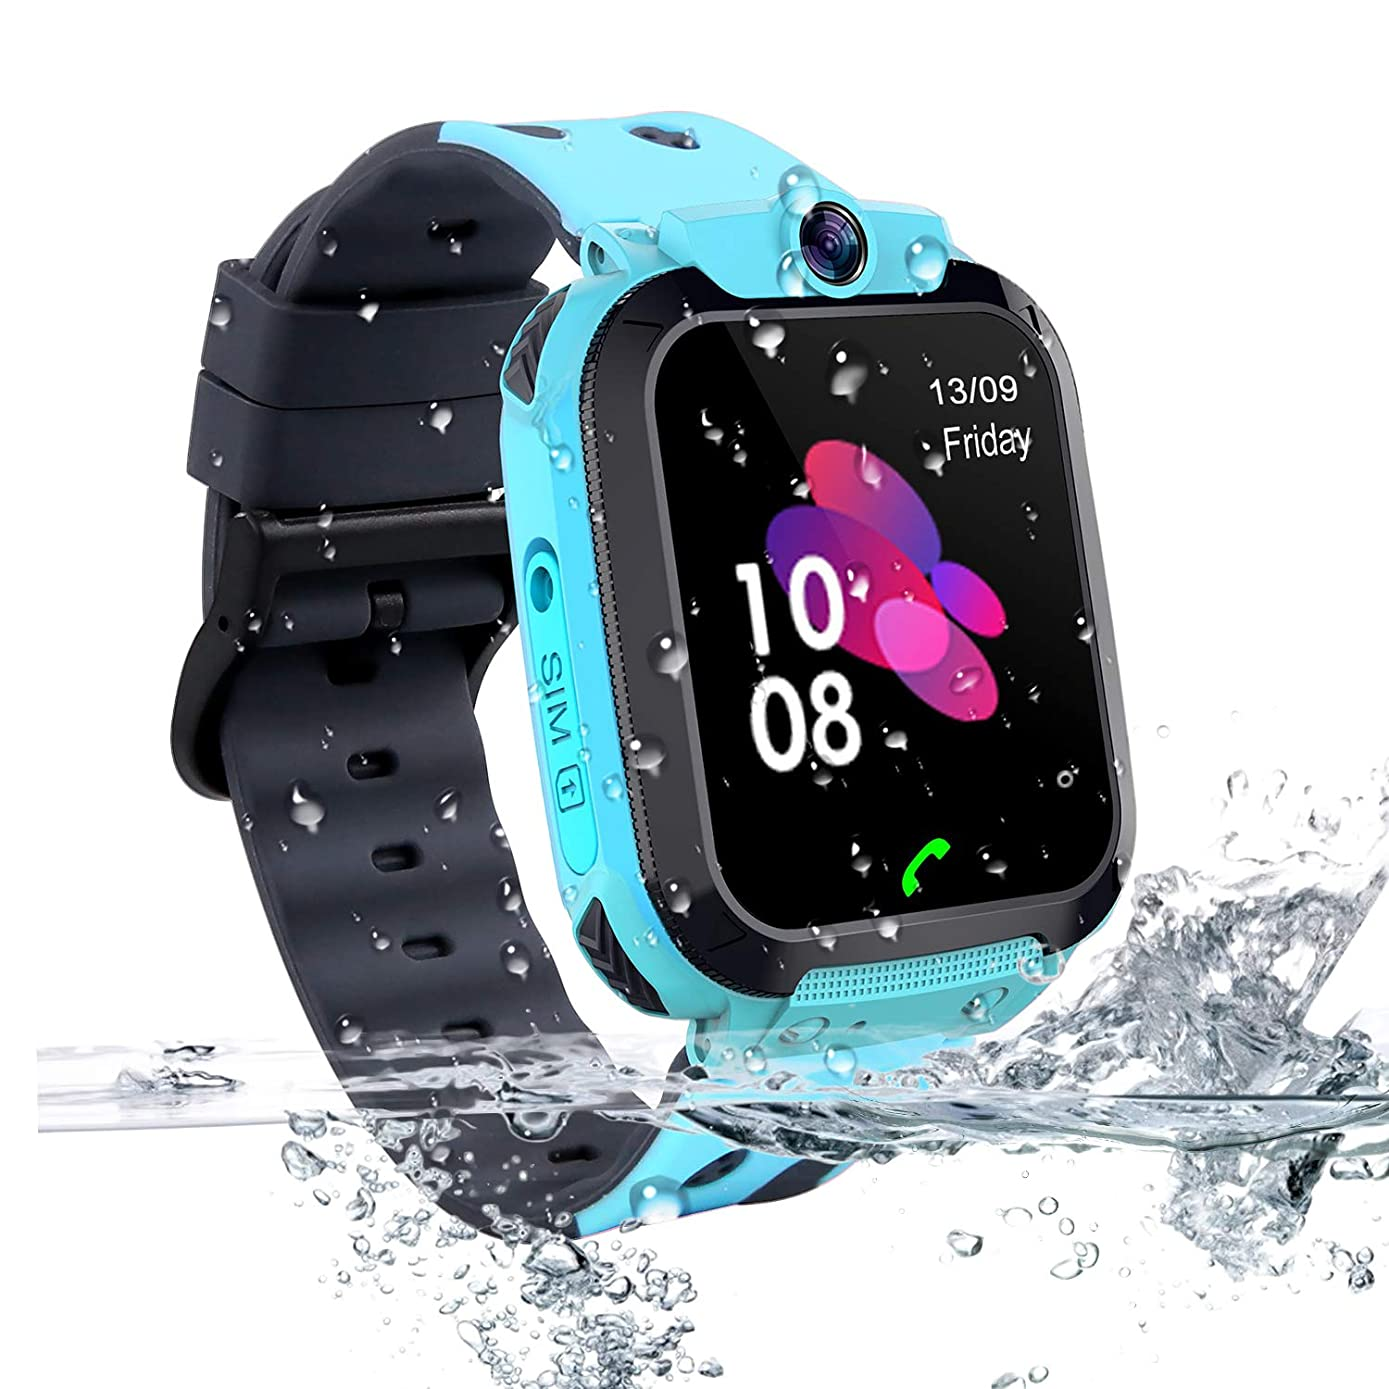 Themoemoe Kids Smartwatch Phone, Kids GPS Track Watch Waterproof Smart Watch for Kids 3-14 with SOS Anti-Lost Sim Card Smartwatch with Camera Birthday Gift for Boys Girls(Blue)